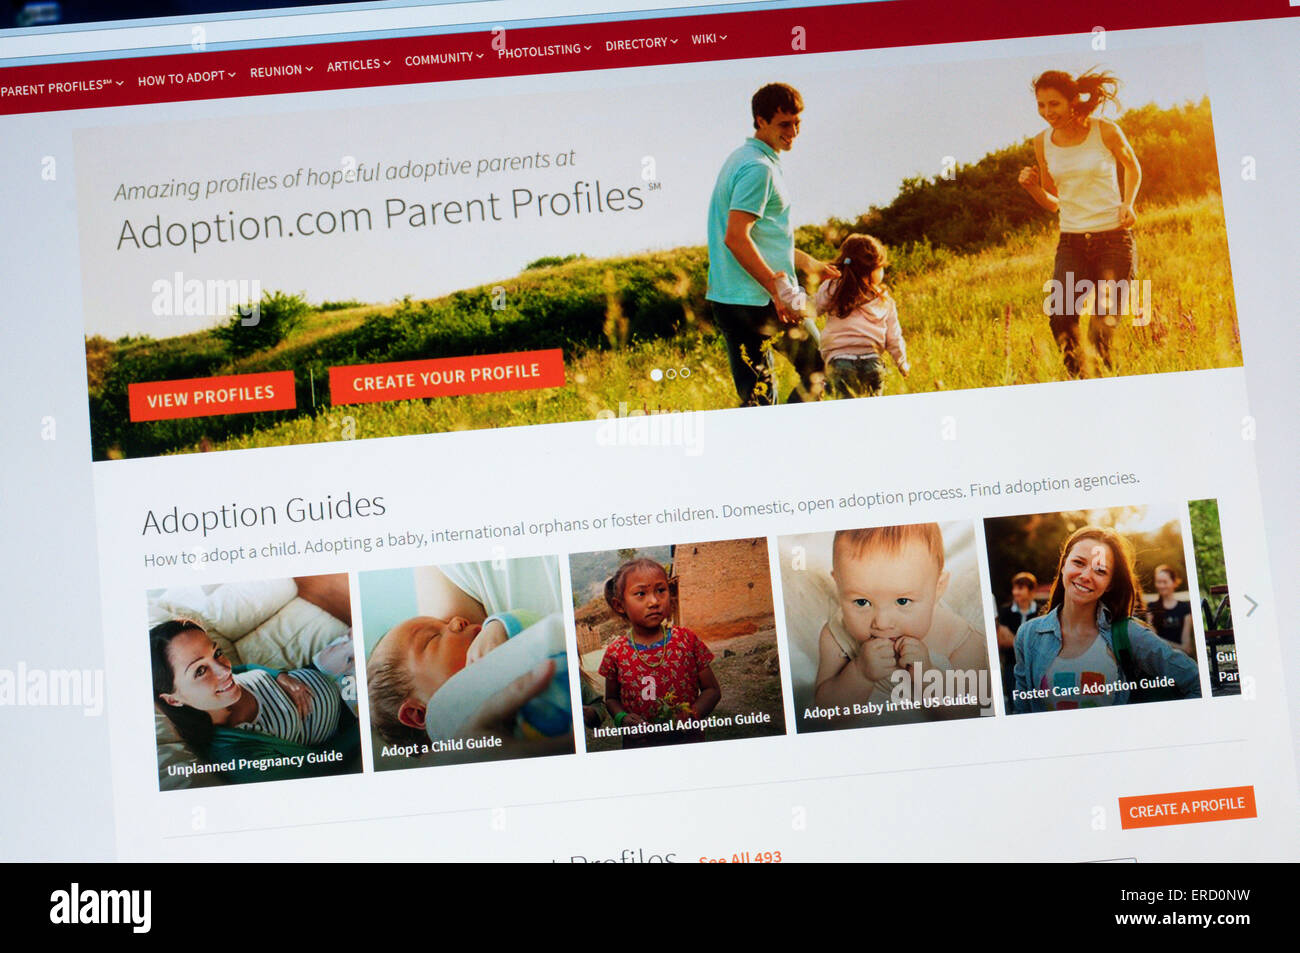 The home page of the Adoption.com website. - Stock Image